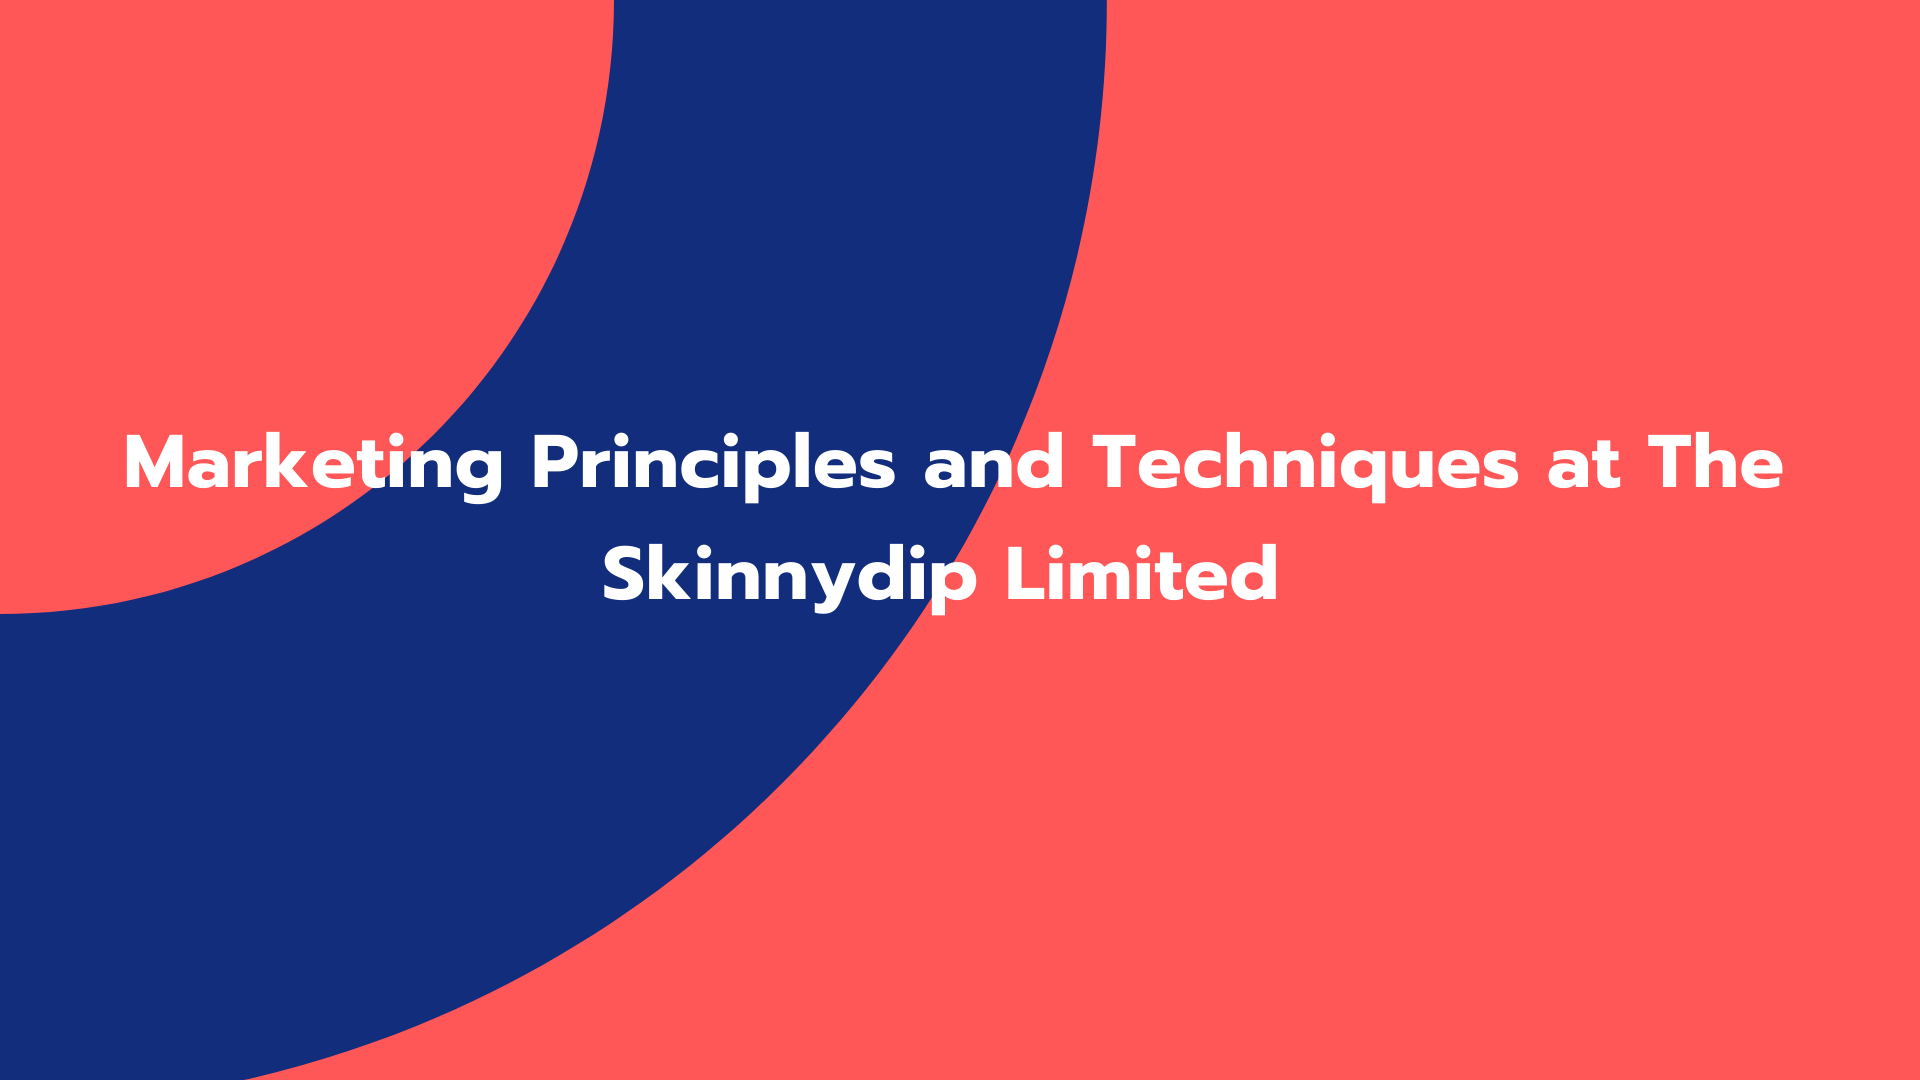 Marketing Principles and Techniques at The Skinnydip Limited